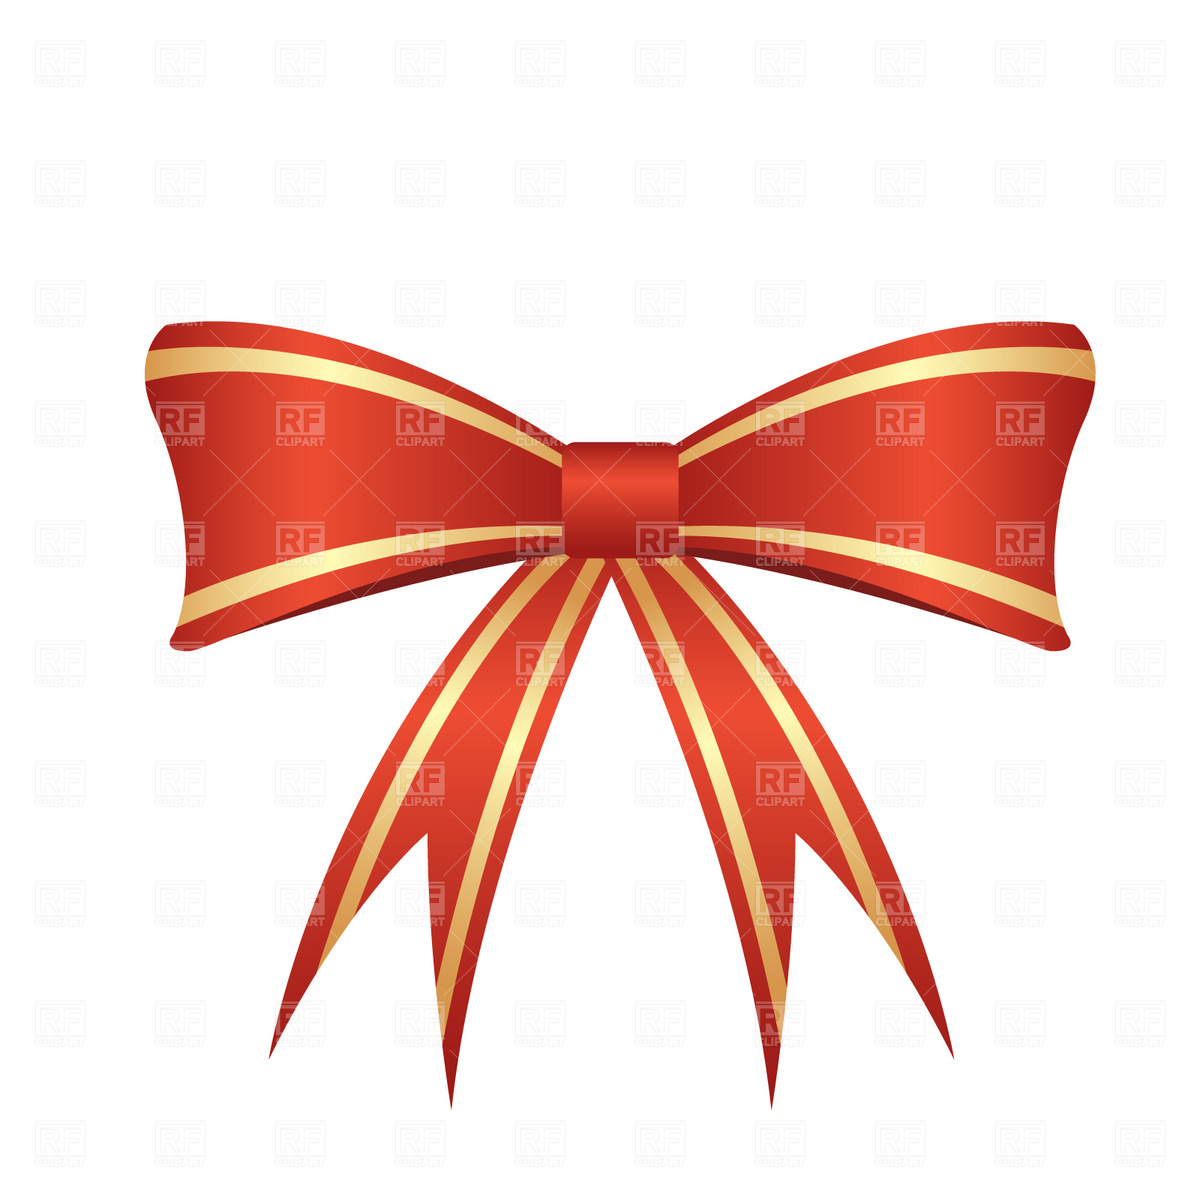 Red Bow 1855 Design Elements Download Royalty Free Vector Clipart